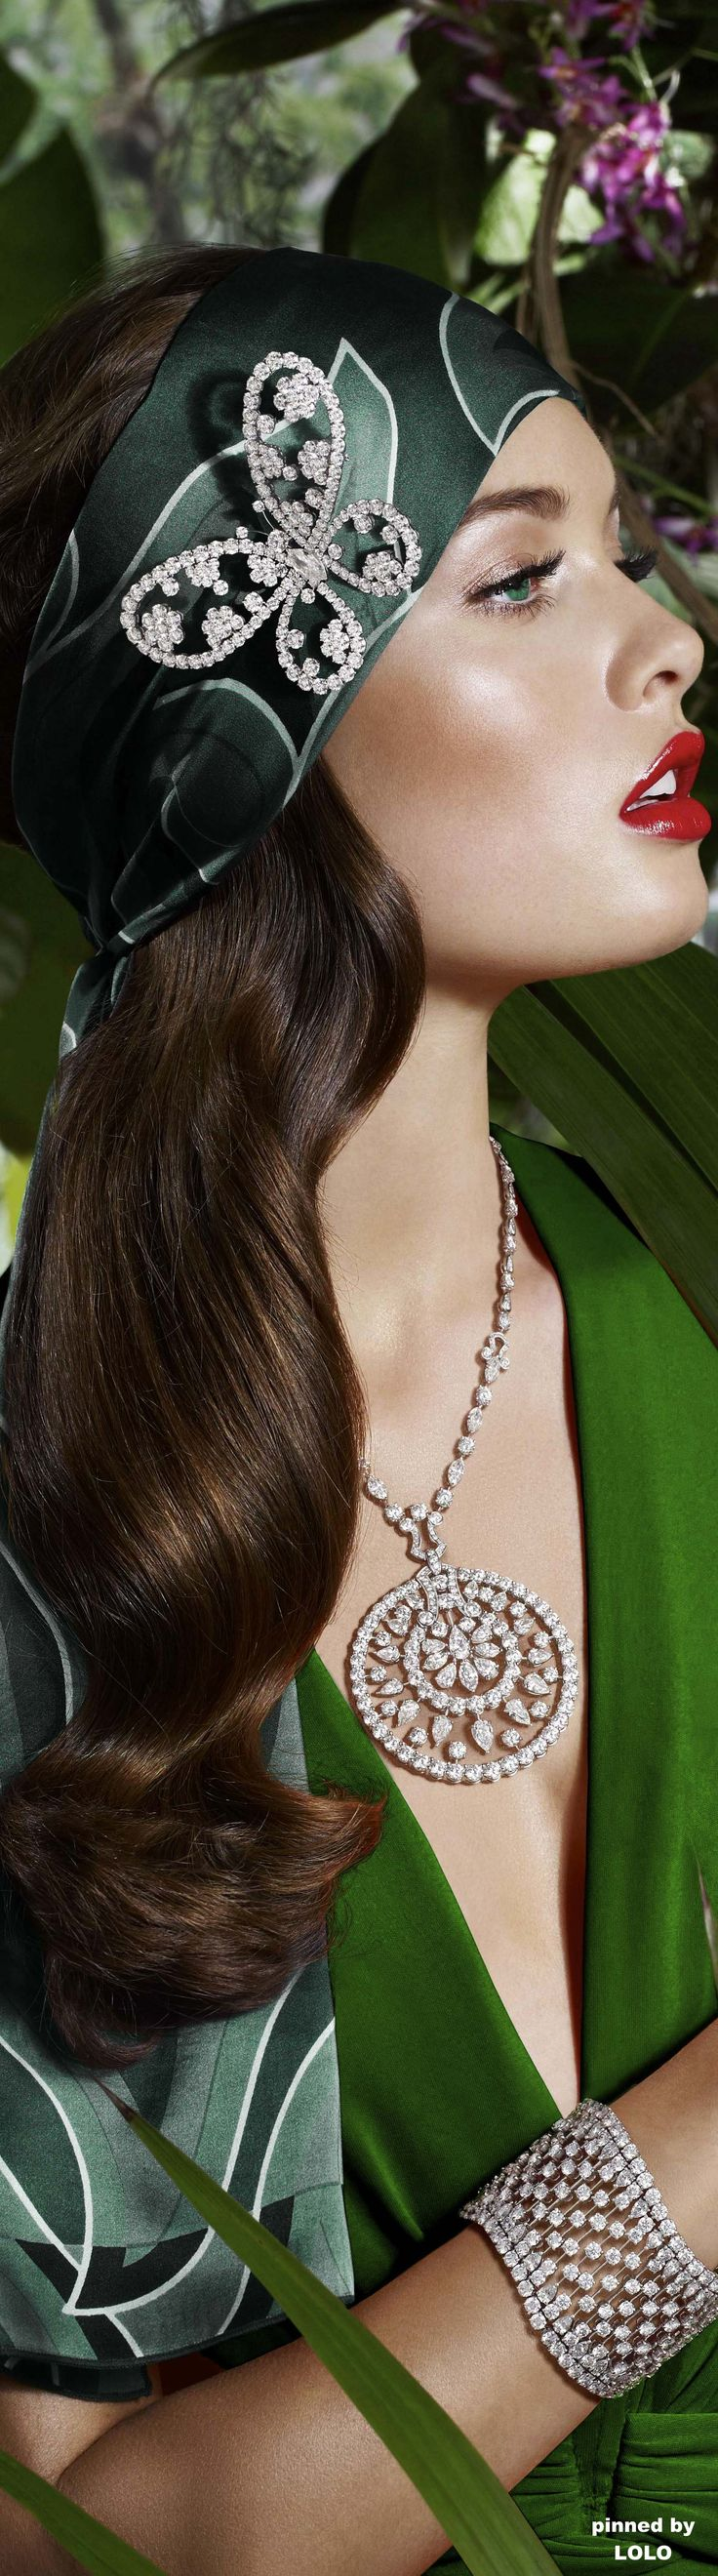 Sandrah Hellberg's wearing stunning diamonds jewels.